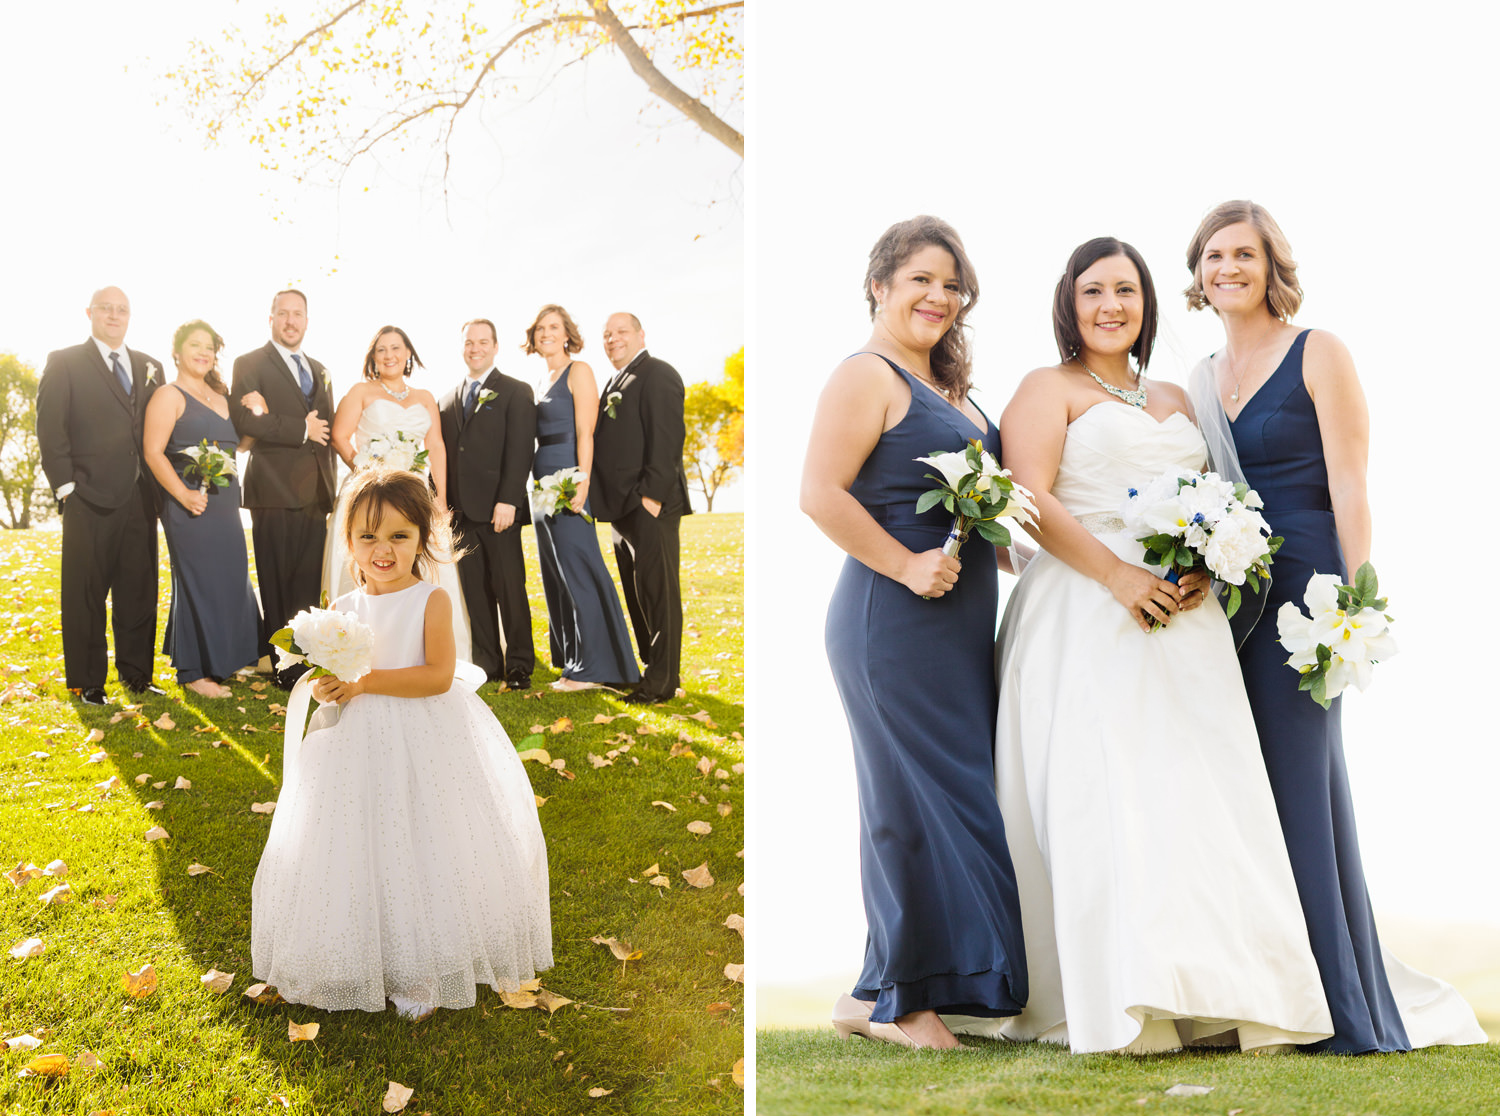 centennial-valley-country-club-wedding-tomKphoto-007.jpg